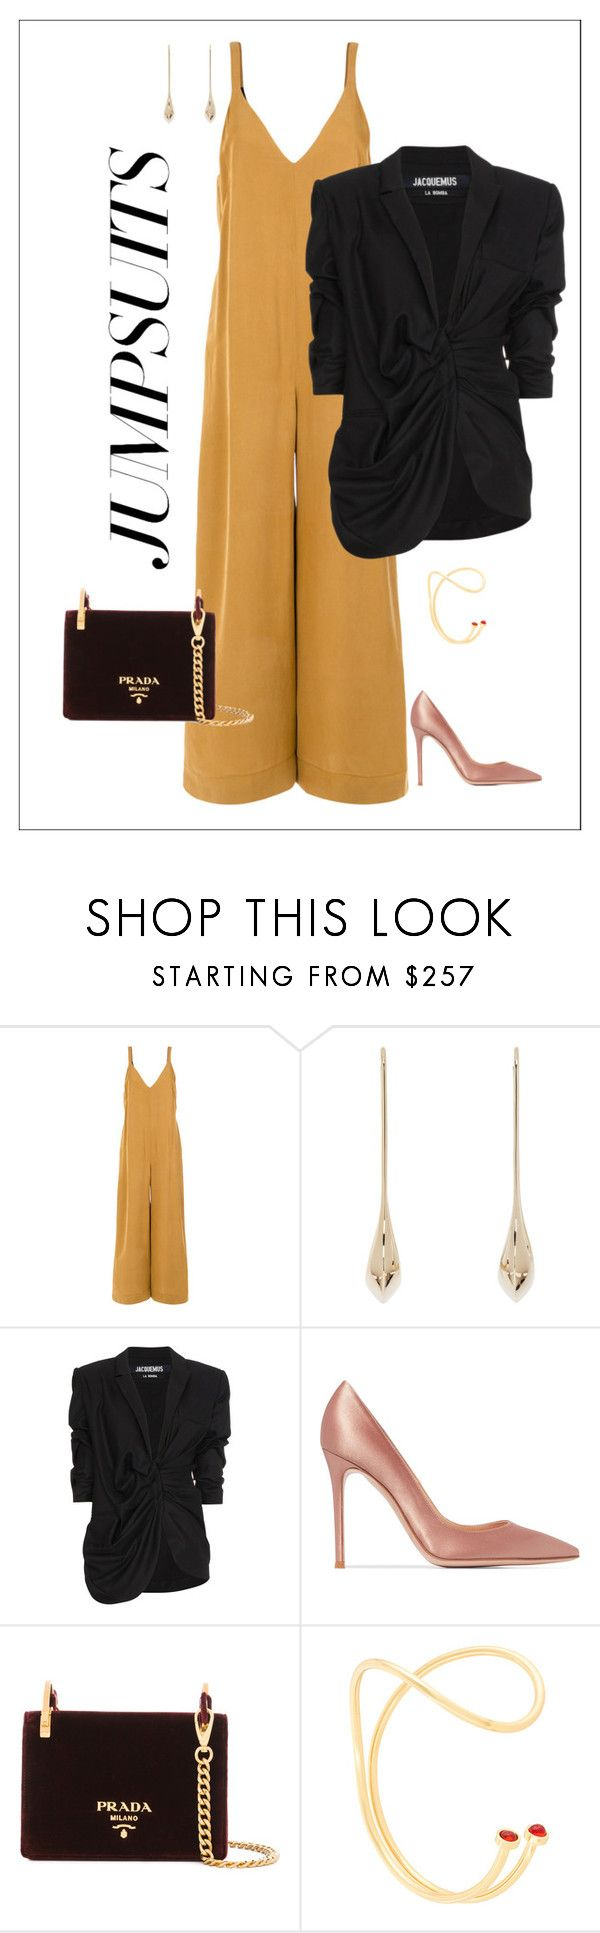 """""""Sem título #180"""" by gstvcbrl ❤ liked on Polyvore featuring Andrea Marques, Lemaire, Jacquemus, Gianvito Rossi, Prada, Paula Mendoza and jumpsuits"""